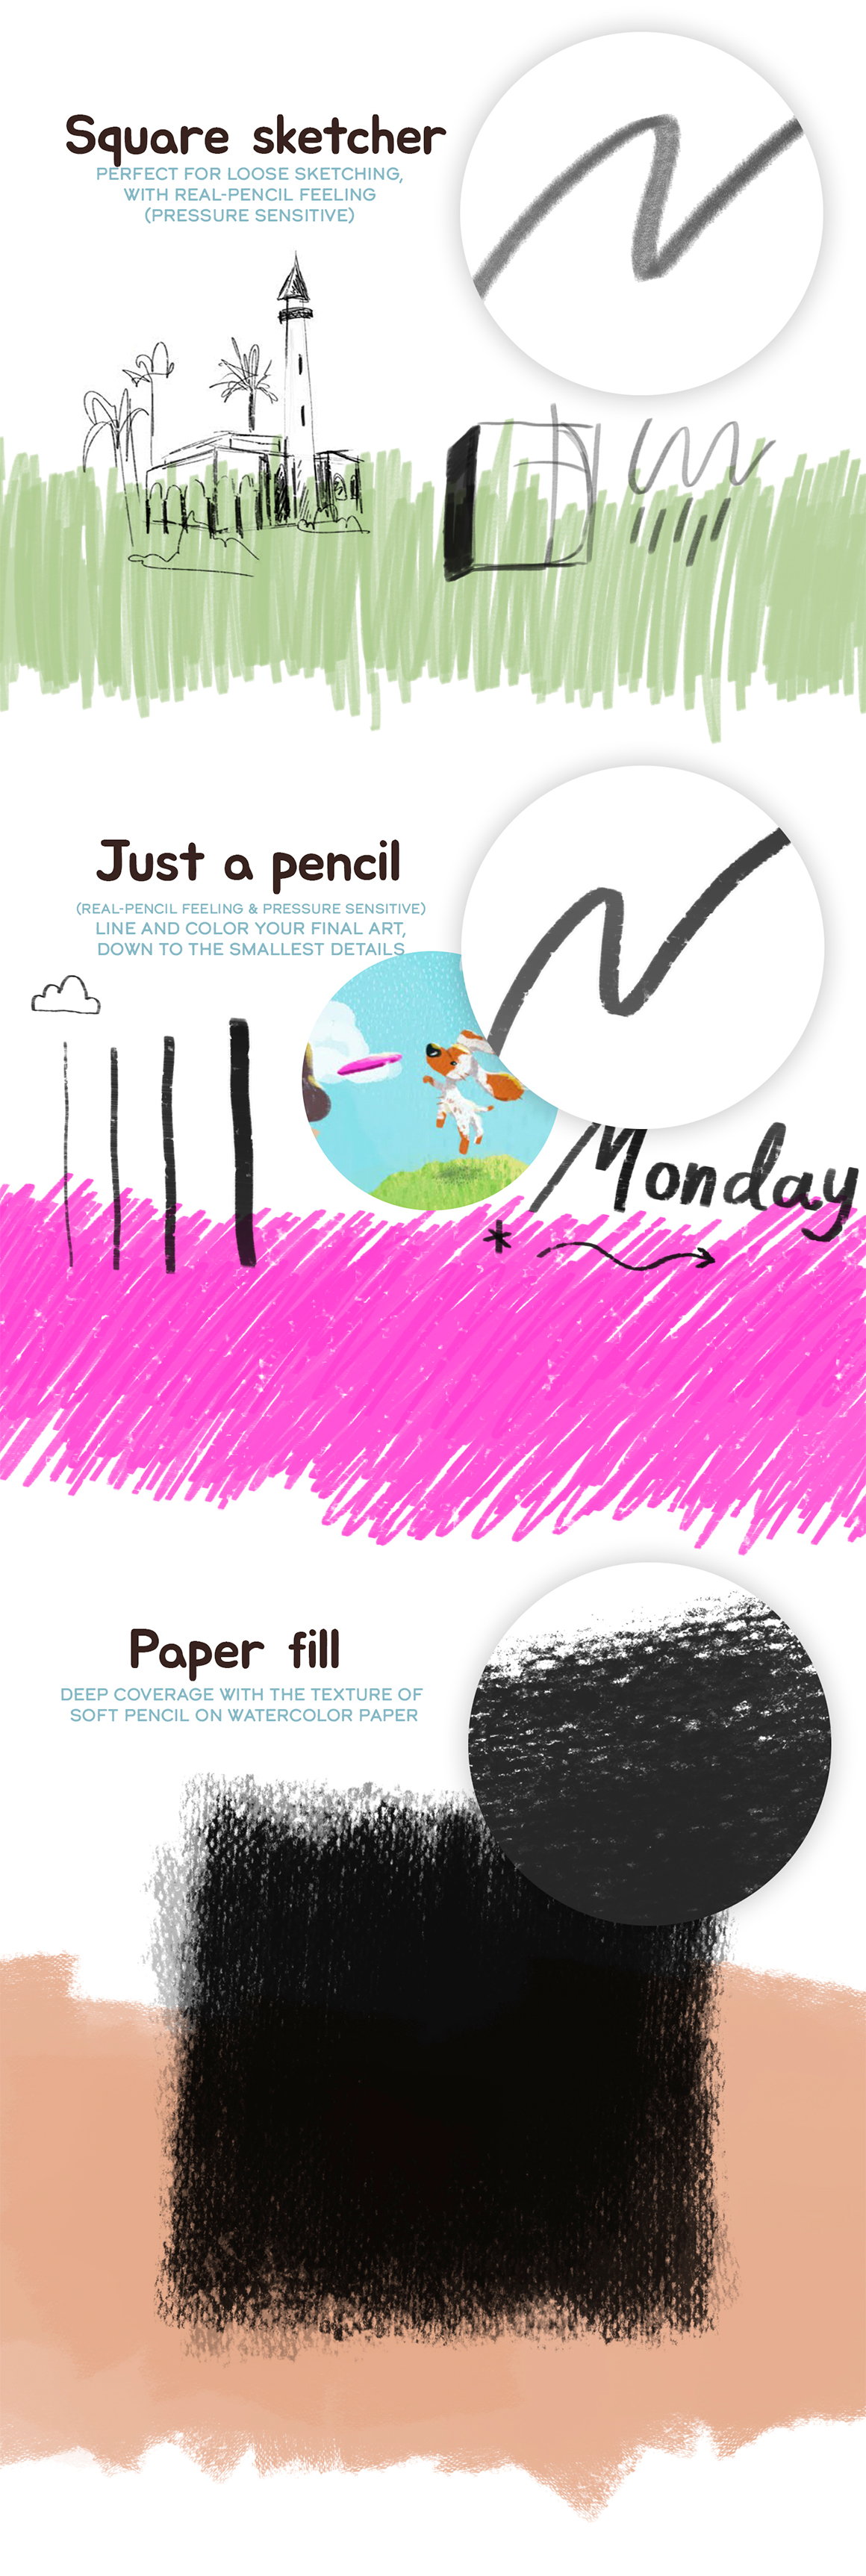 Laura's Real Pencil And Paper Photoshop Brushes